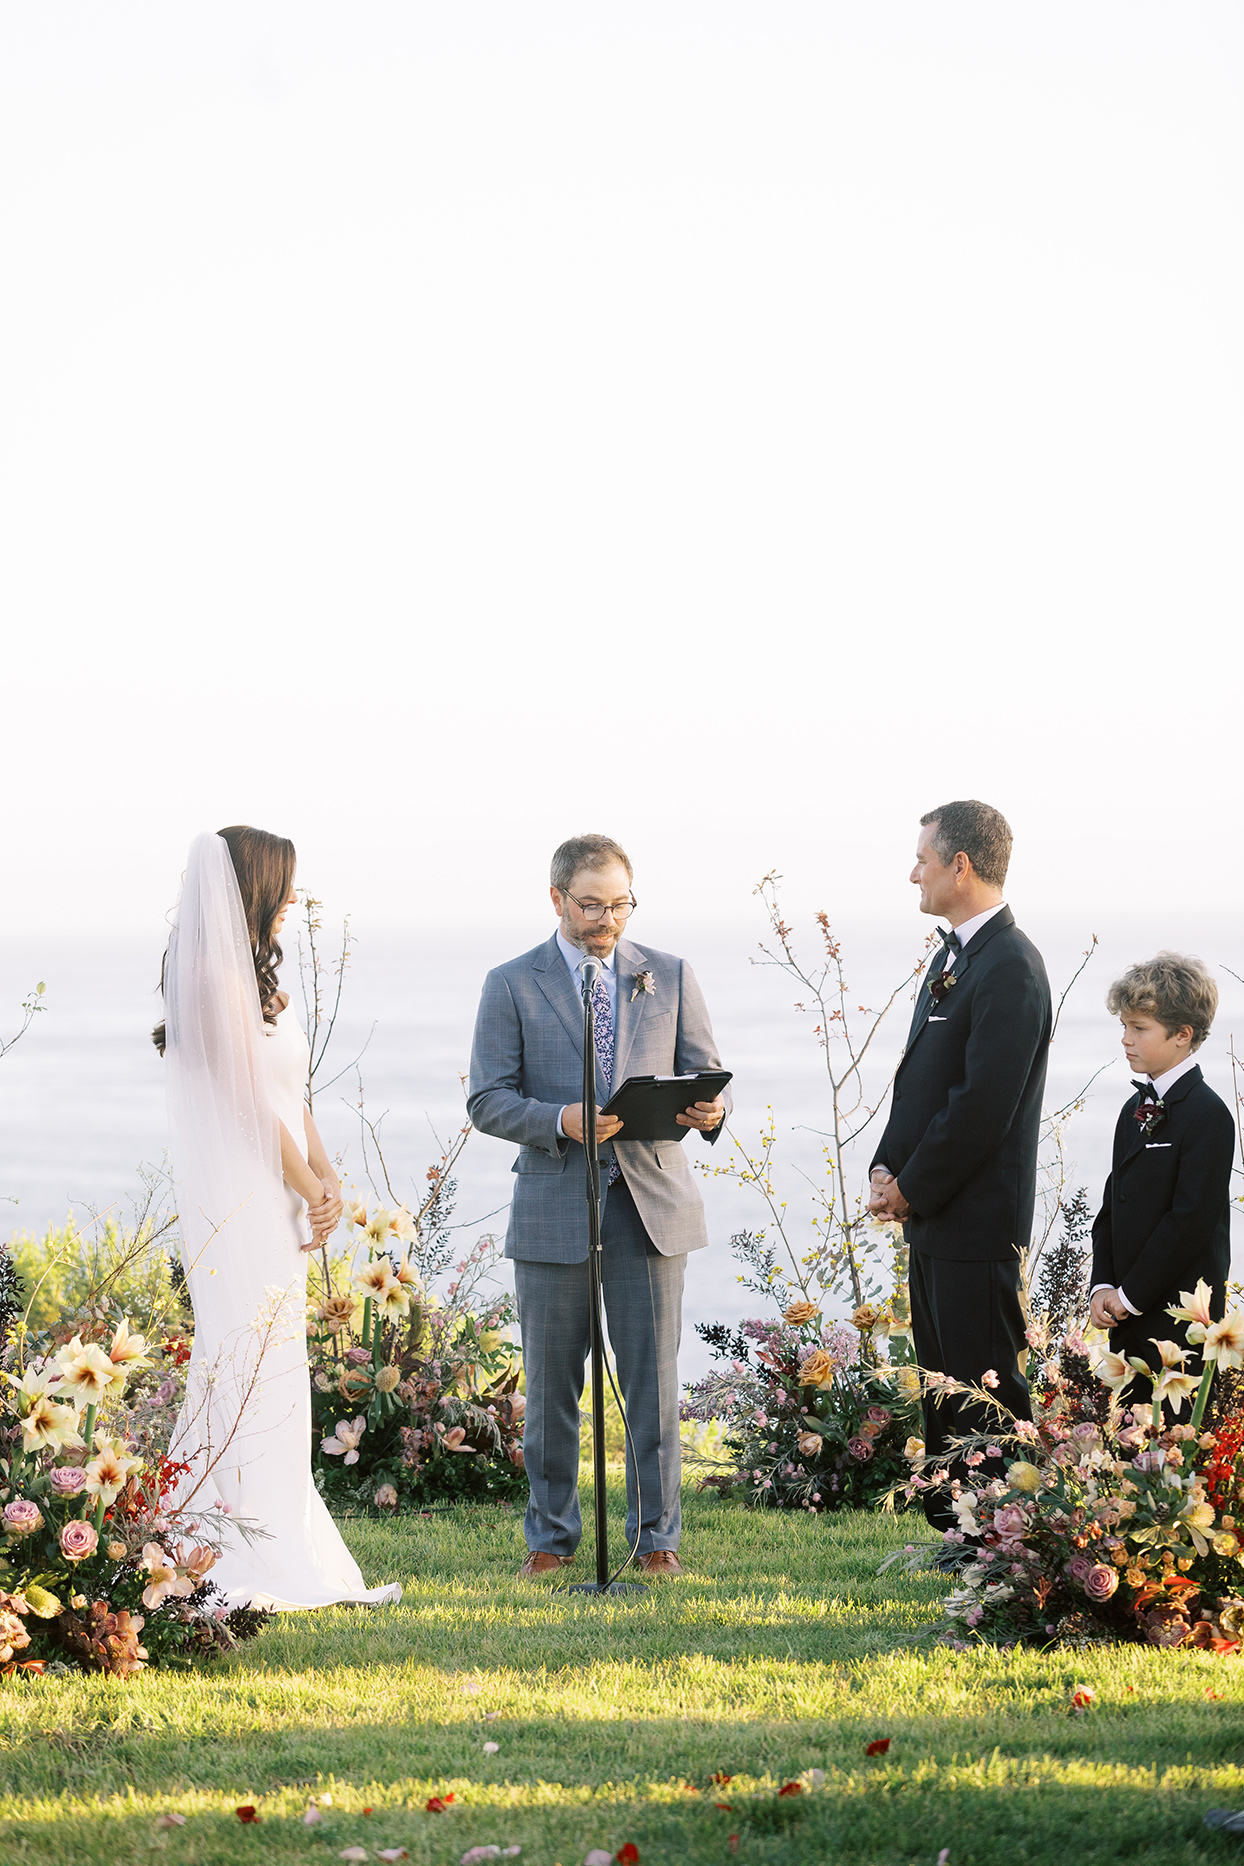 wedding ceremony couple and officiant amidst flowers